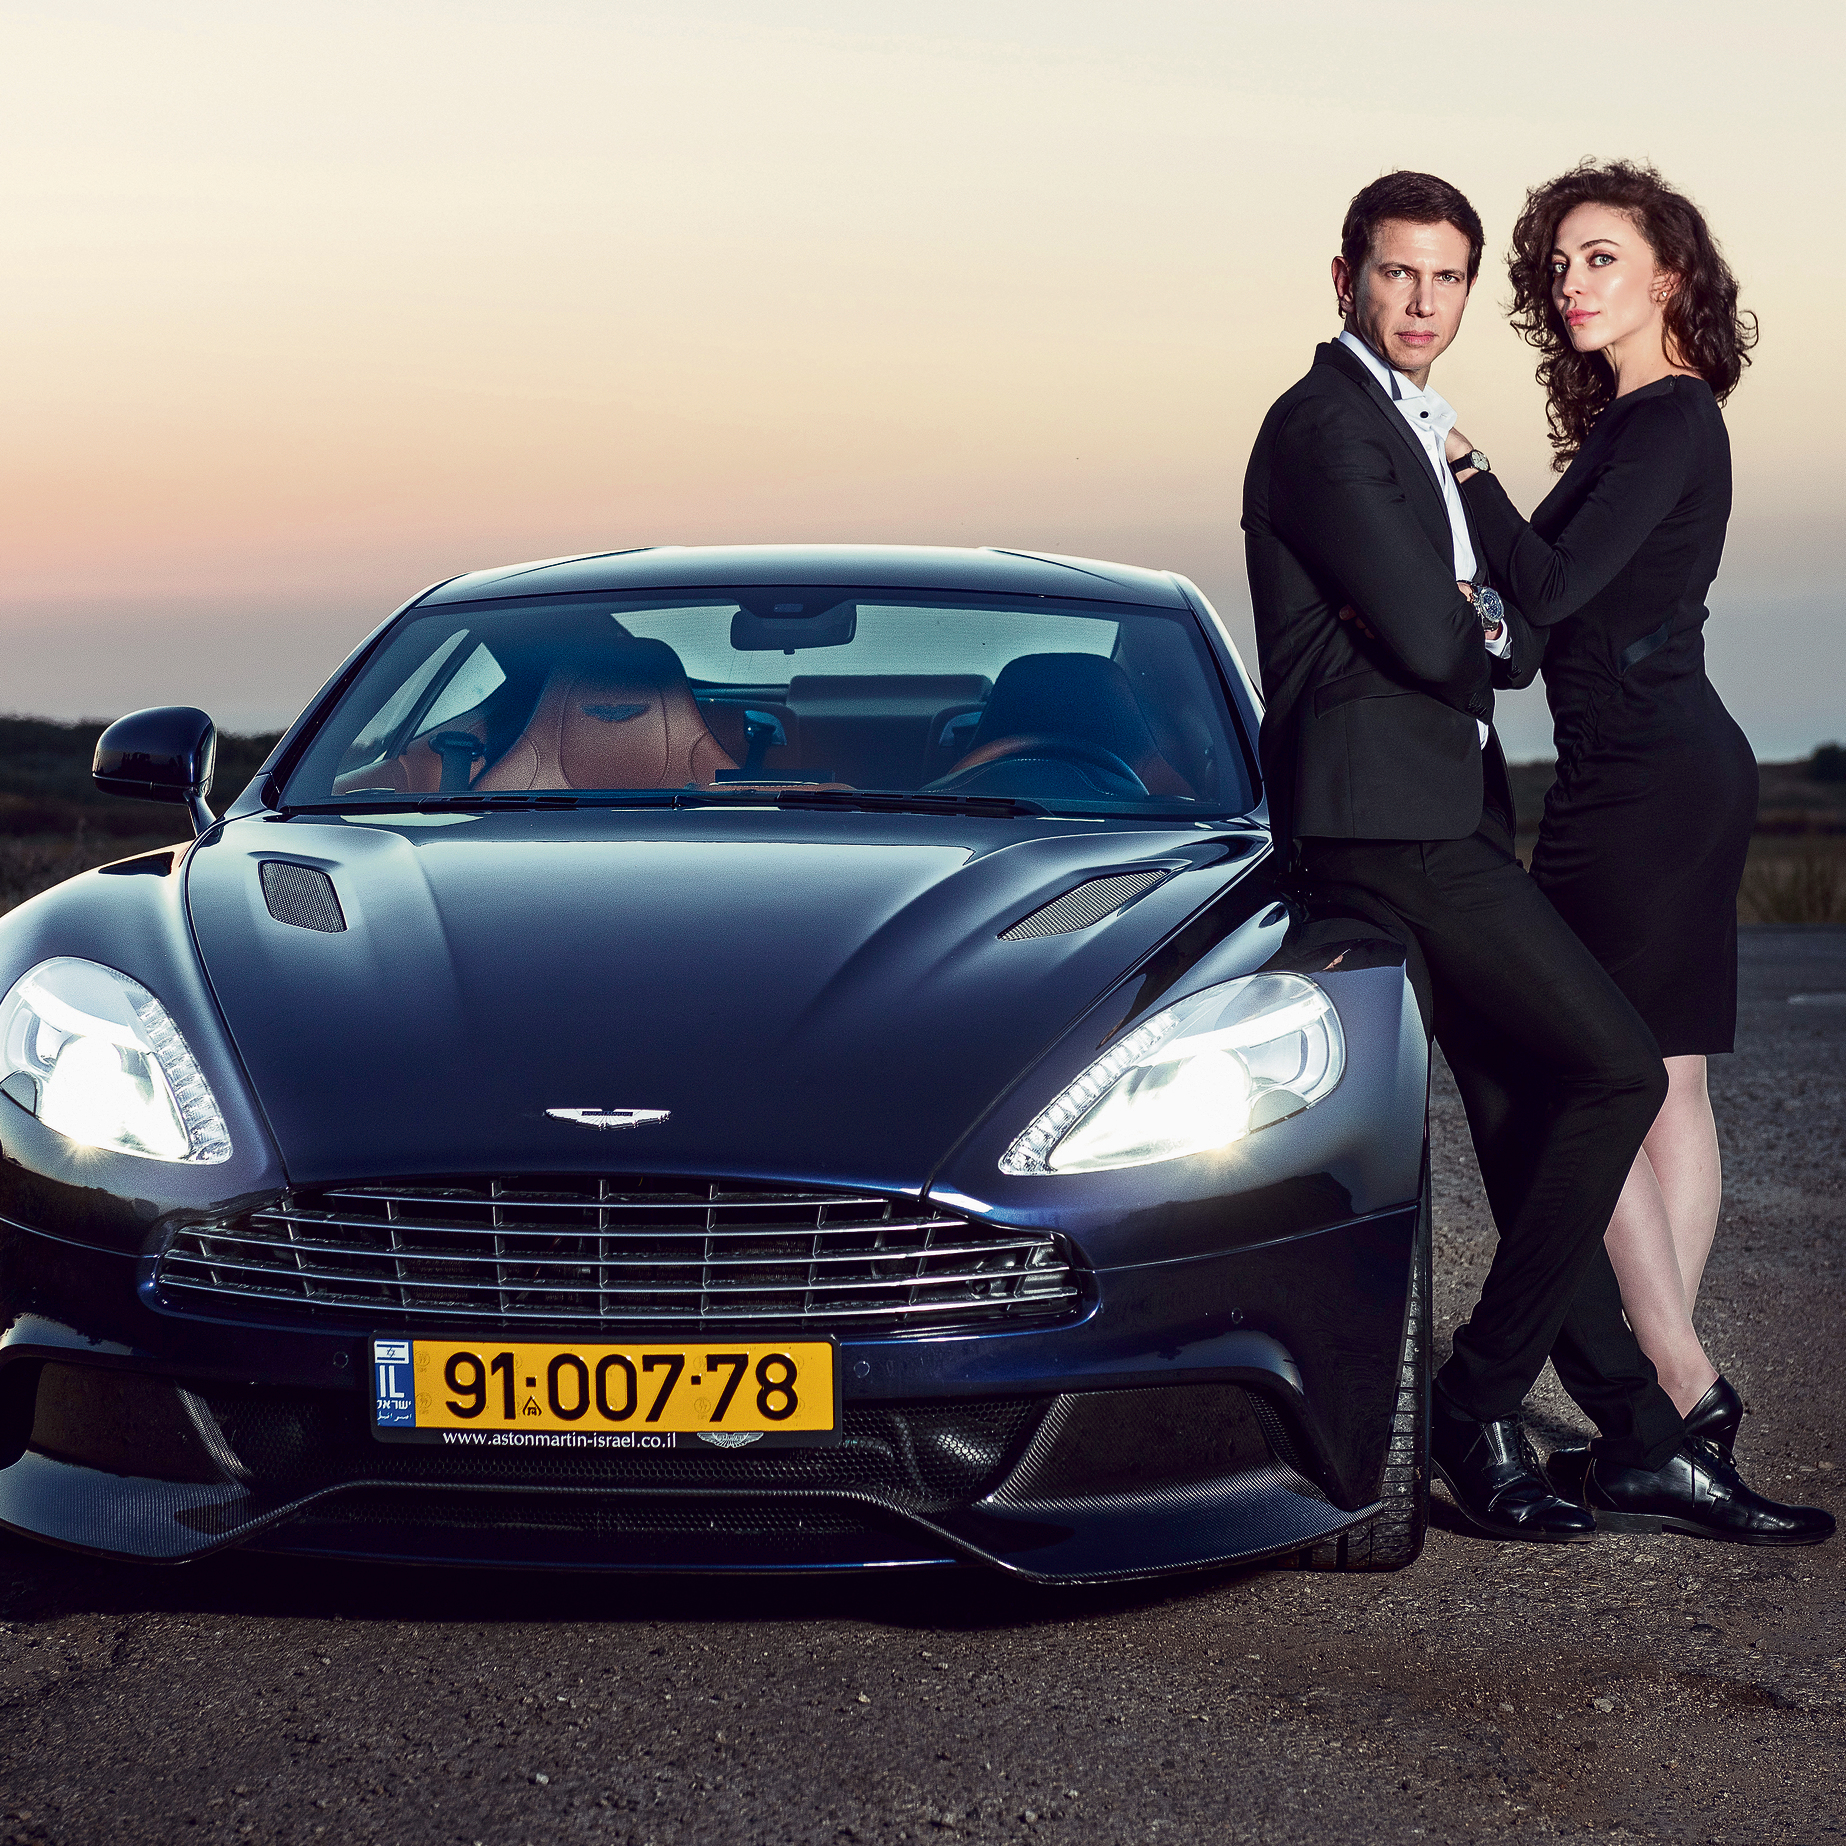 Yana Sofovich, Ronen Bergman and the Aston Martin Vanquish. Spies for a day (Photo: Gabriel Baharlia)